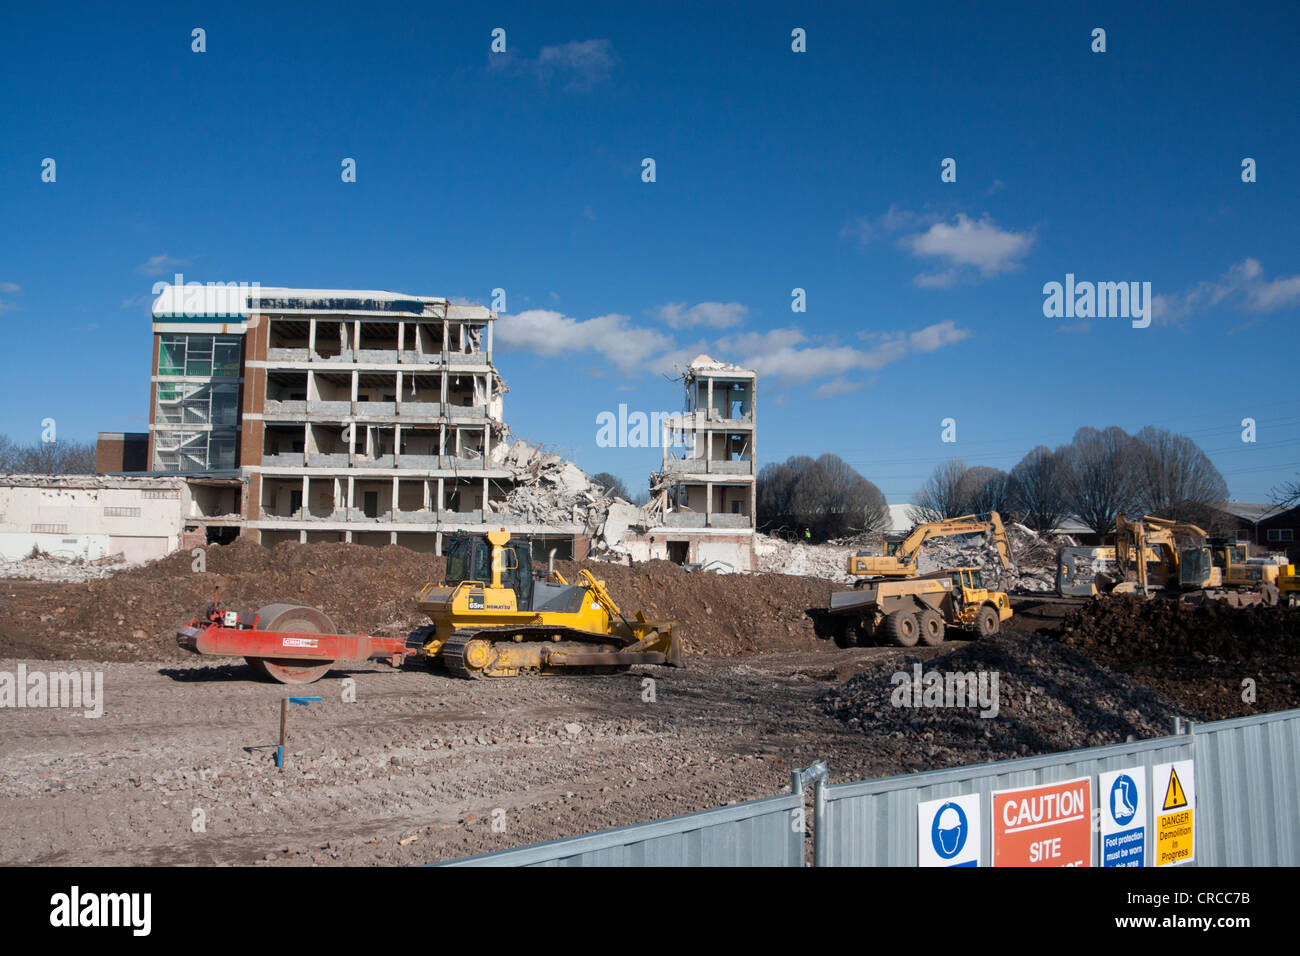 Partly demolished building with mechanical digger clearing away rubble in foreground Cardiff Wales UK - Stock Image